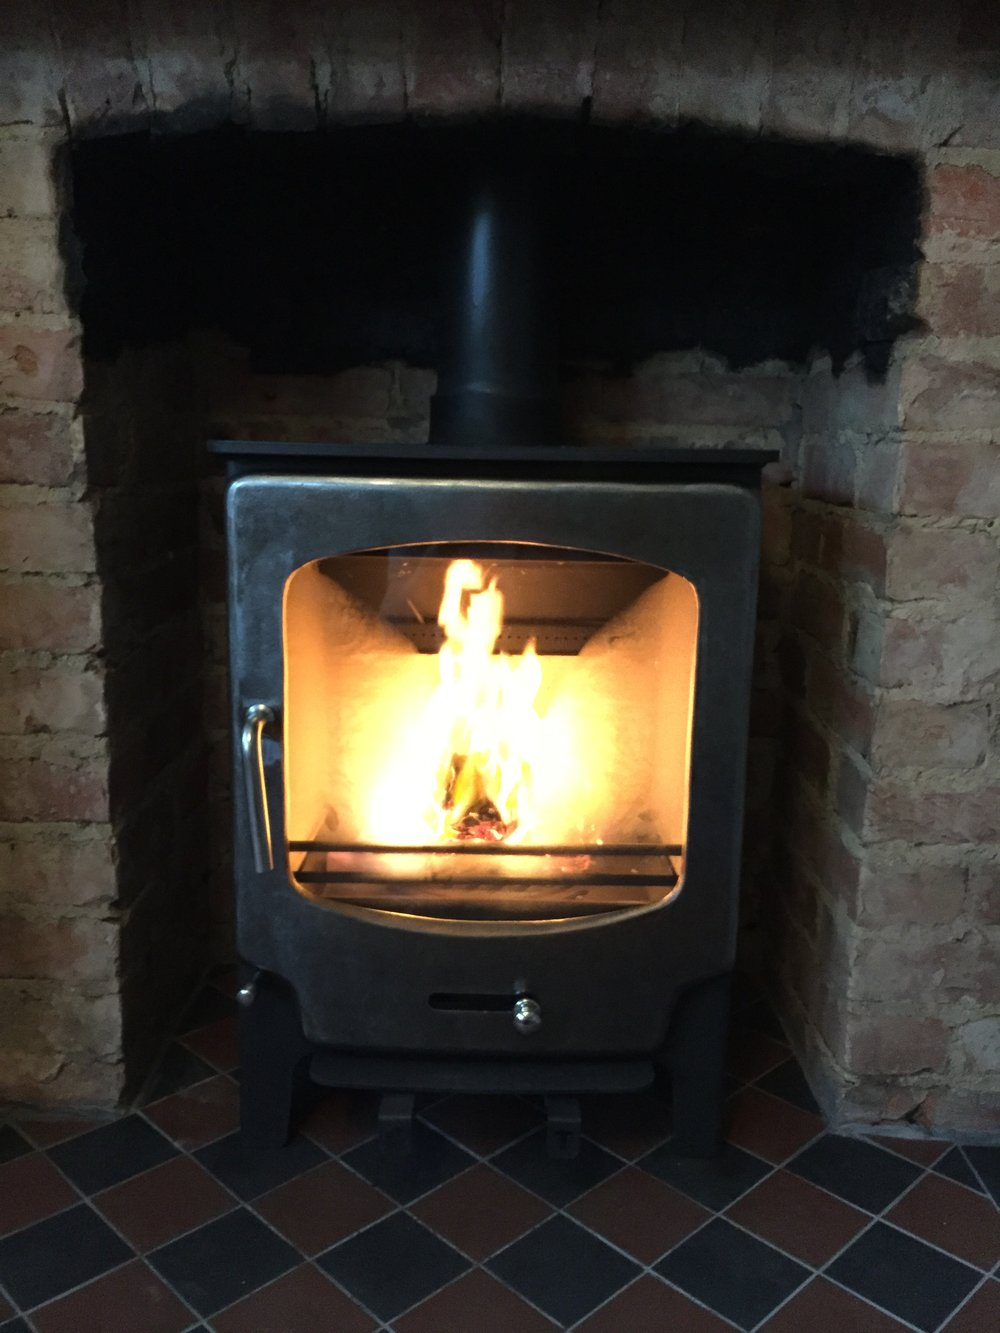 Saltfire-stx8-install-log-burner-brighton